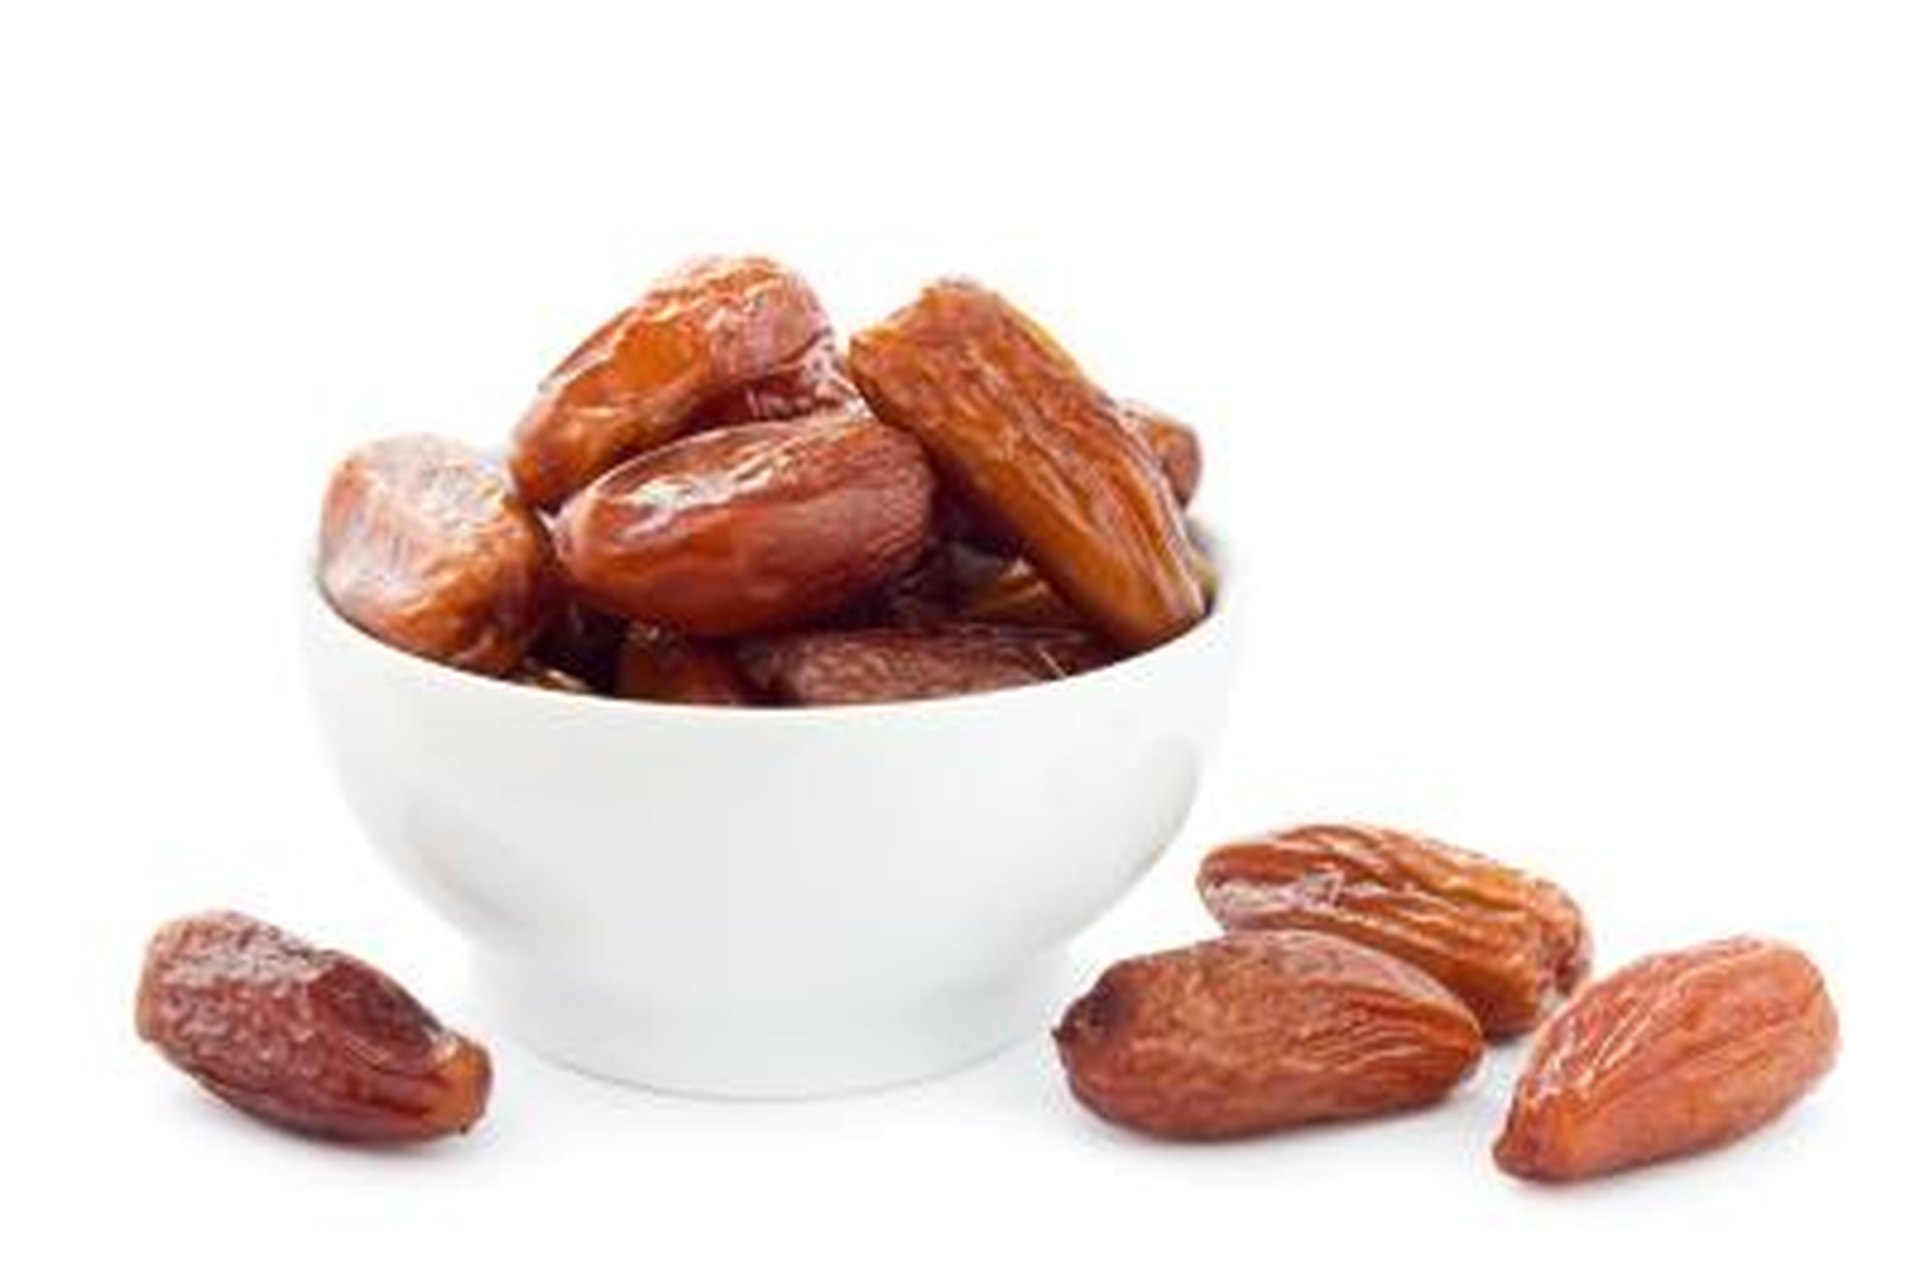 Caloric content of dried fruits